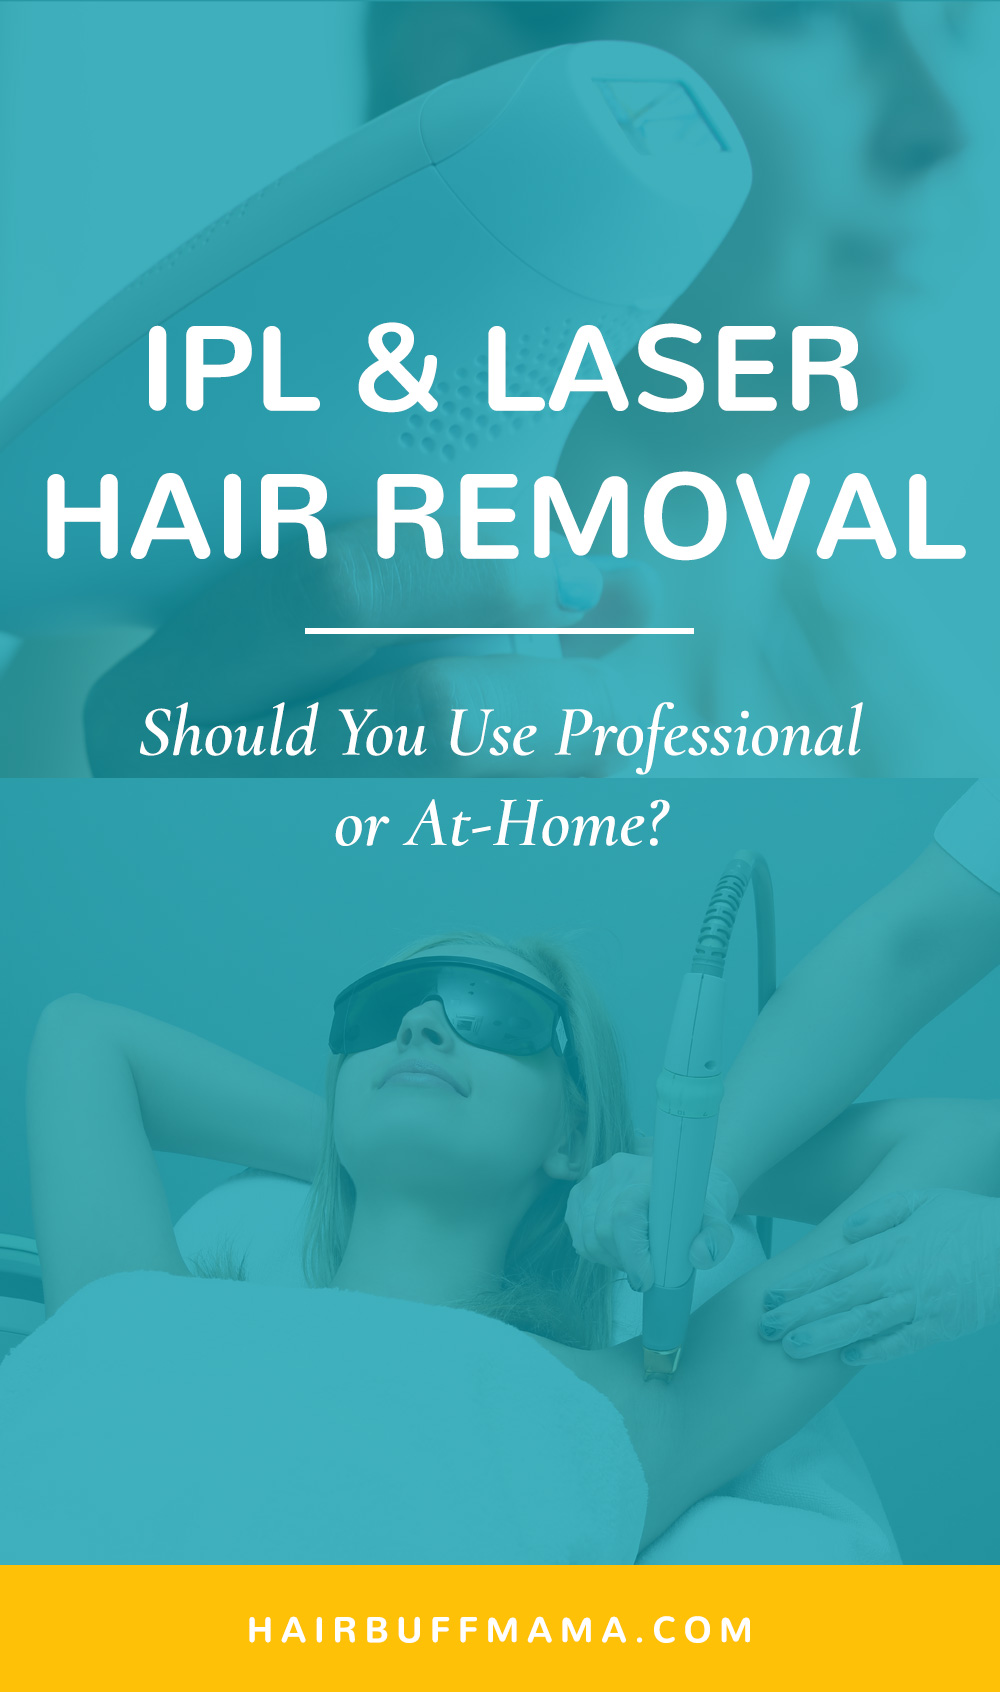 Ipl and laser hair removal should i use professional or at home ipl and laser hair removal should you use professional or at home solutioingenieria Images